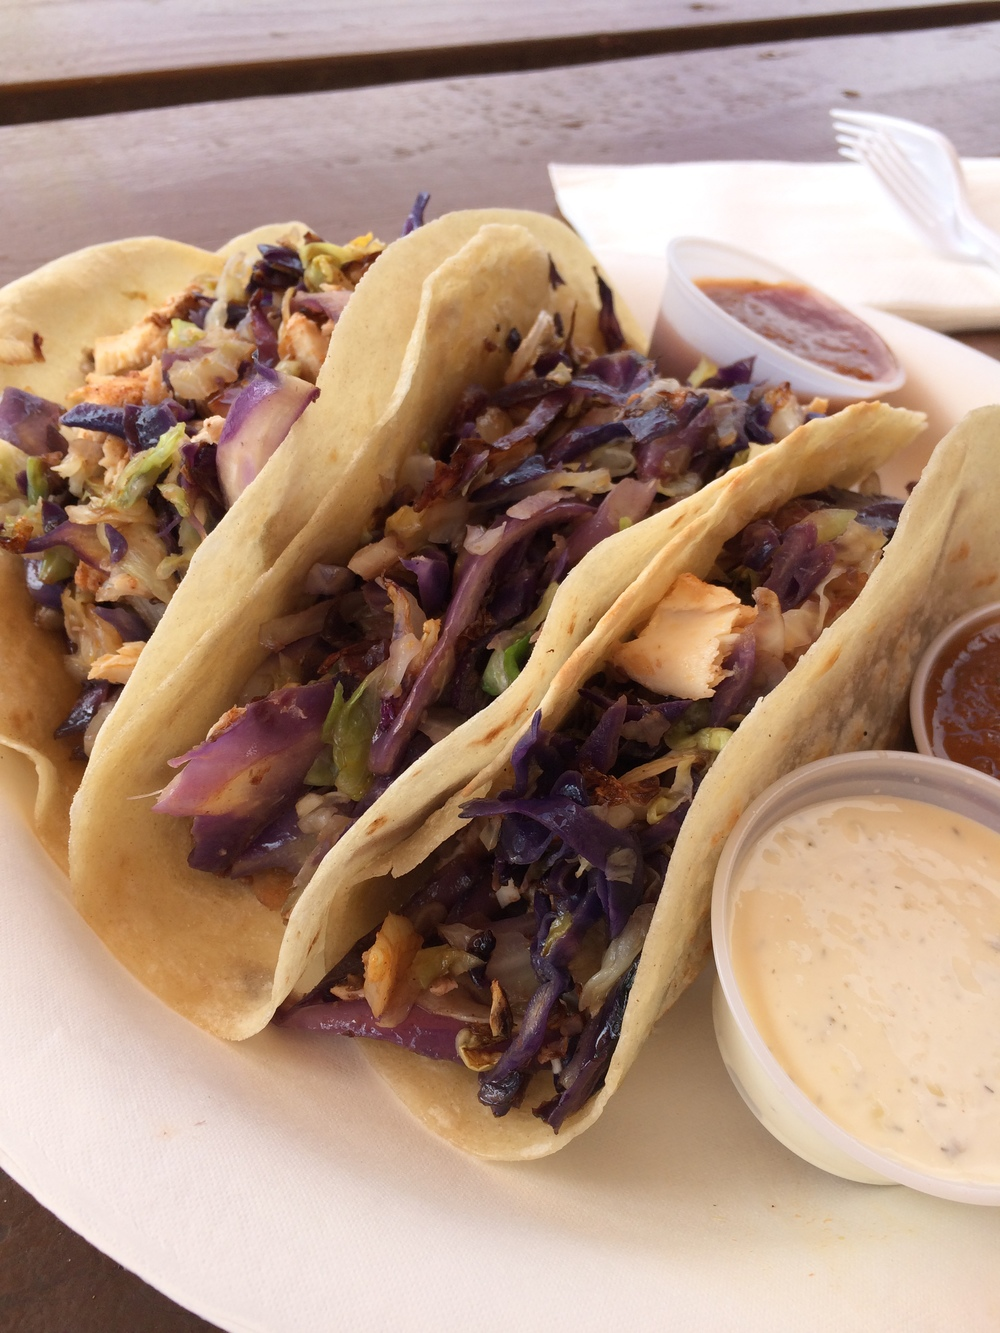 These fish tacos are pretty spectacular @ Island Taco in Waimea.